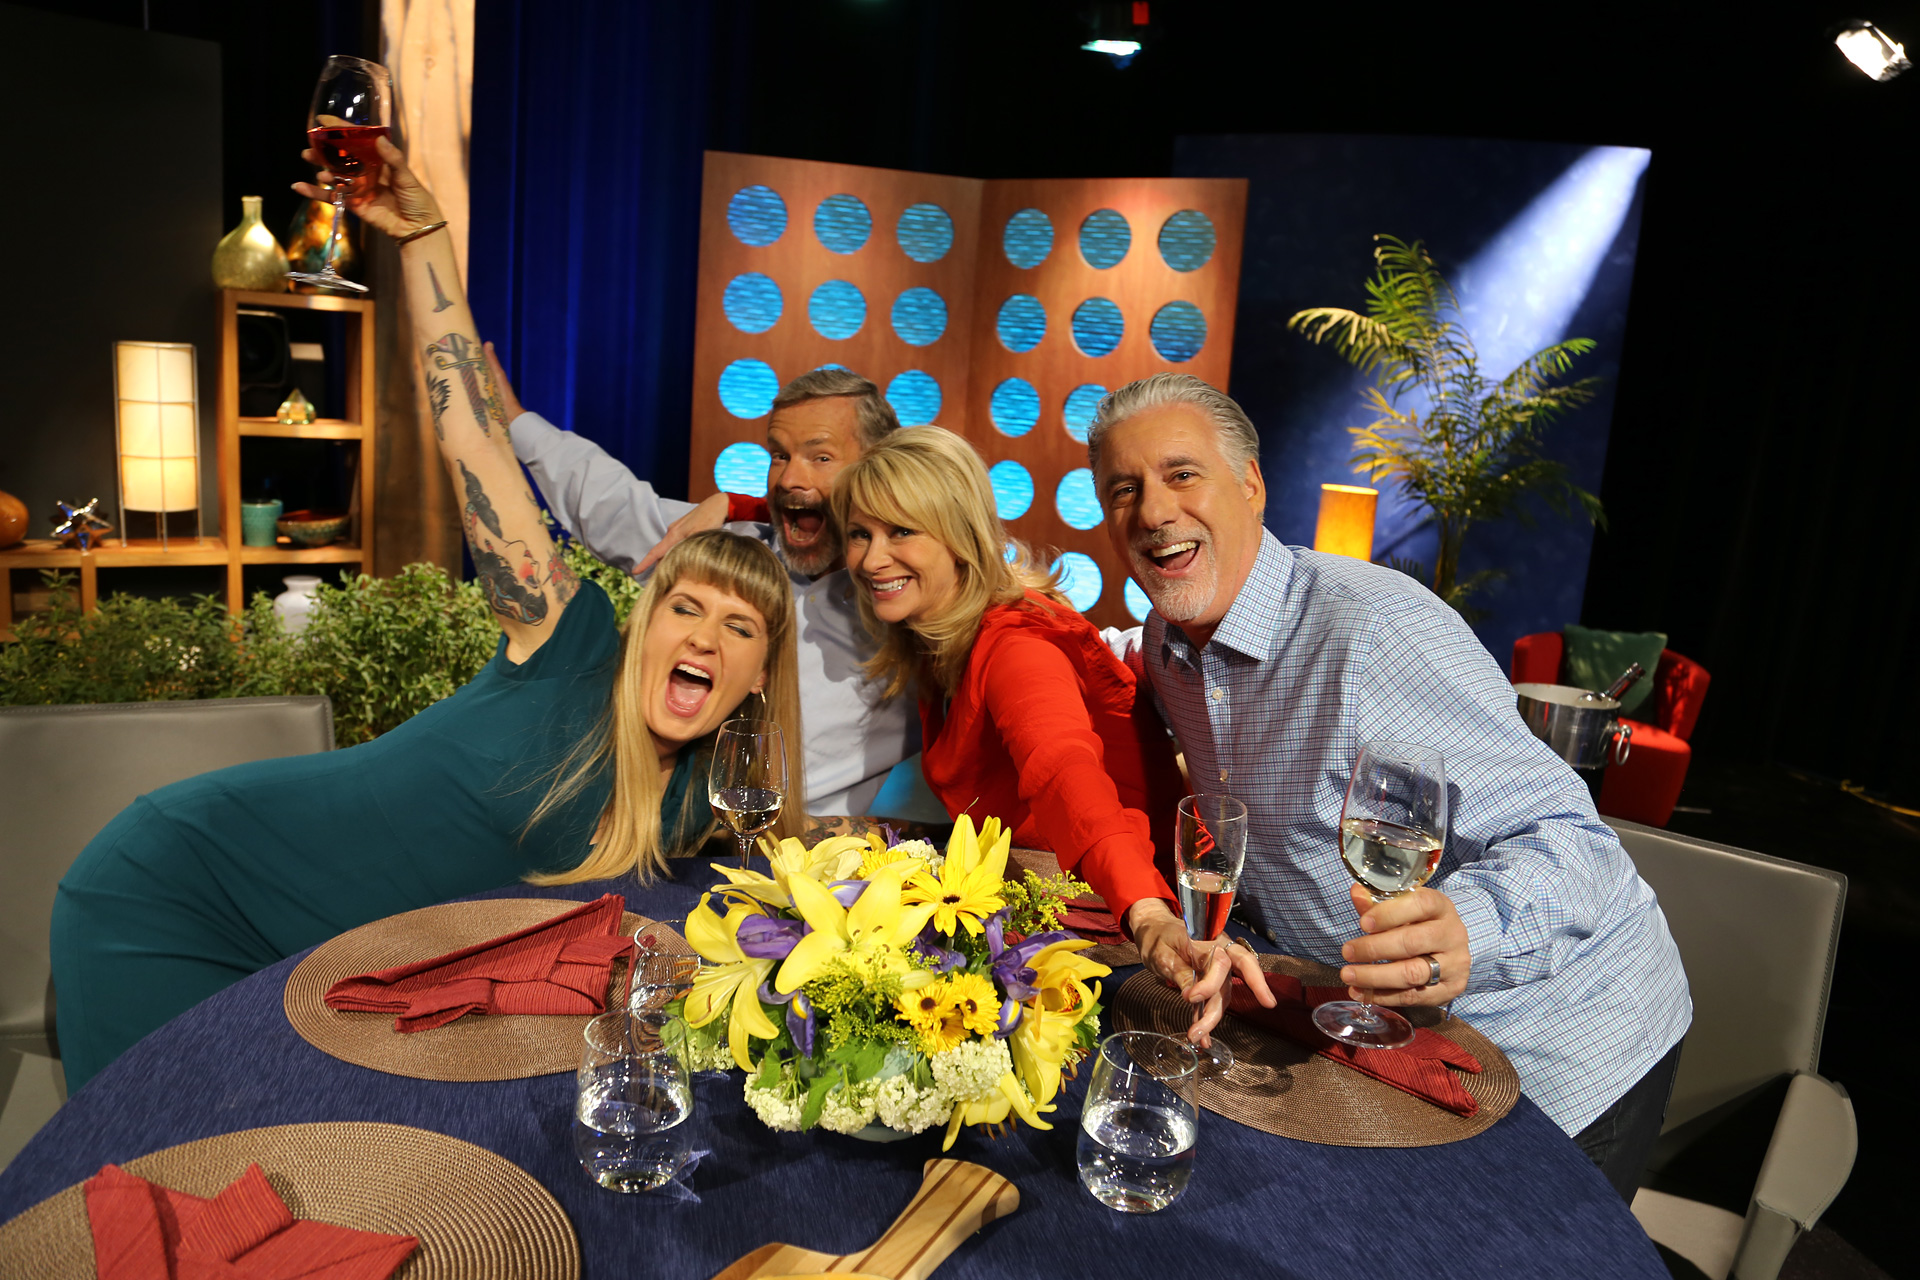 Host Leslie Sbrocco and guests having fun on the set of the episode 11 of season 11.